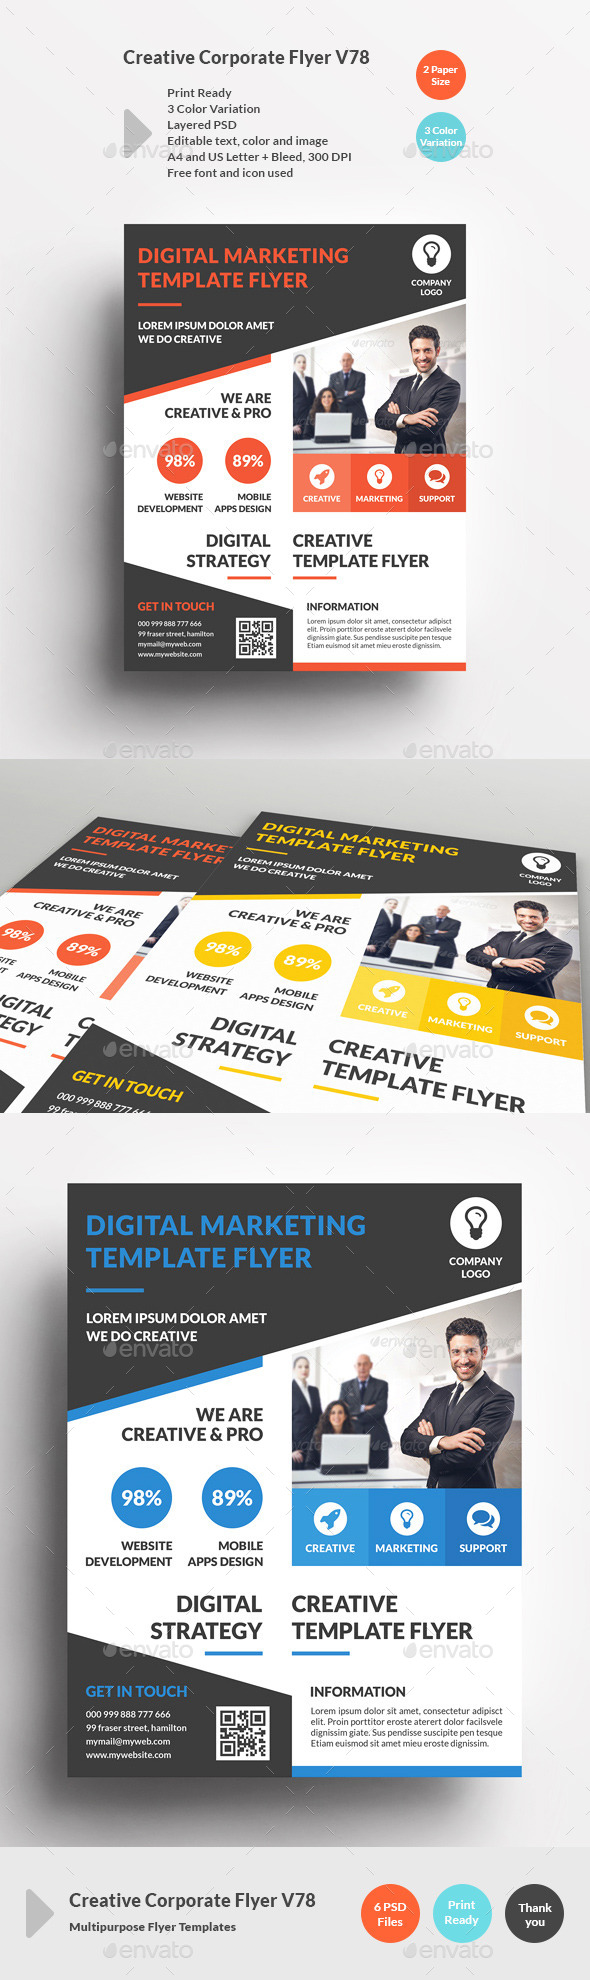 Creative Corporate Flyer V78 - Corporate Flyers